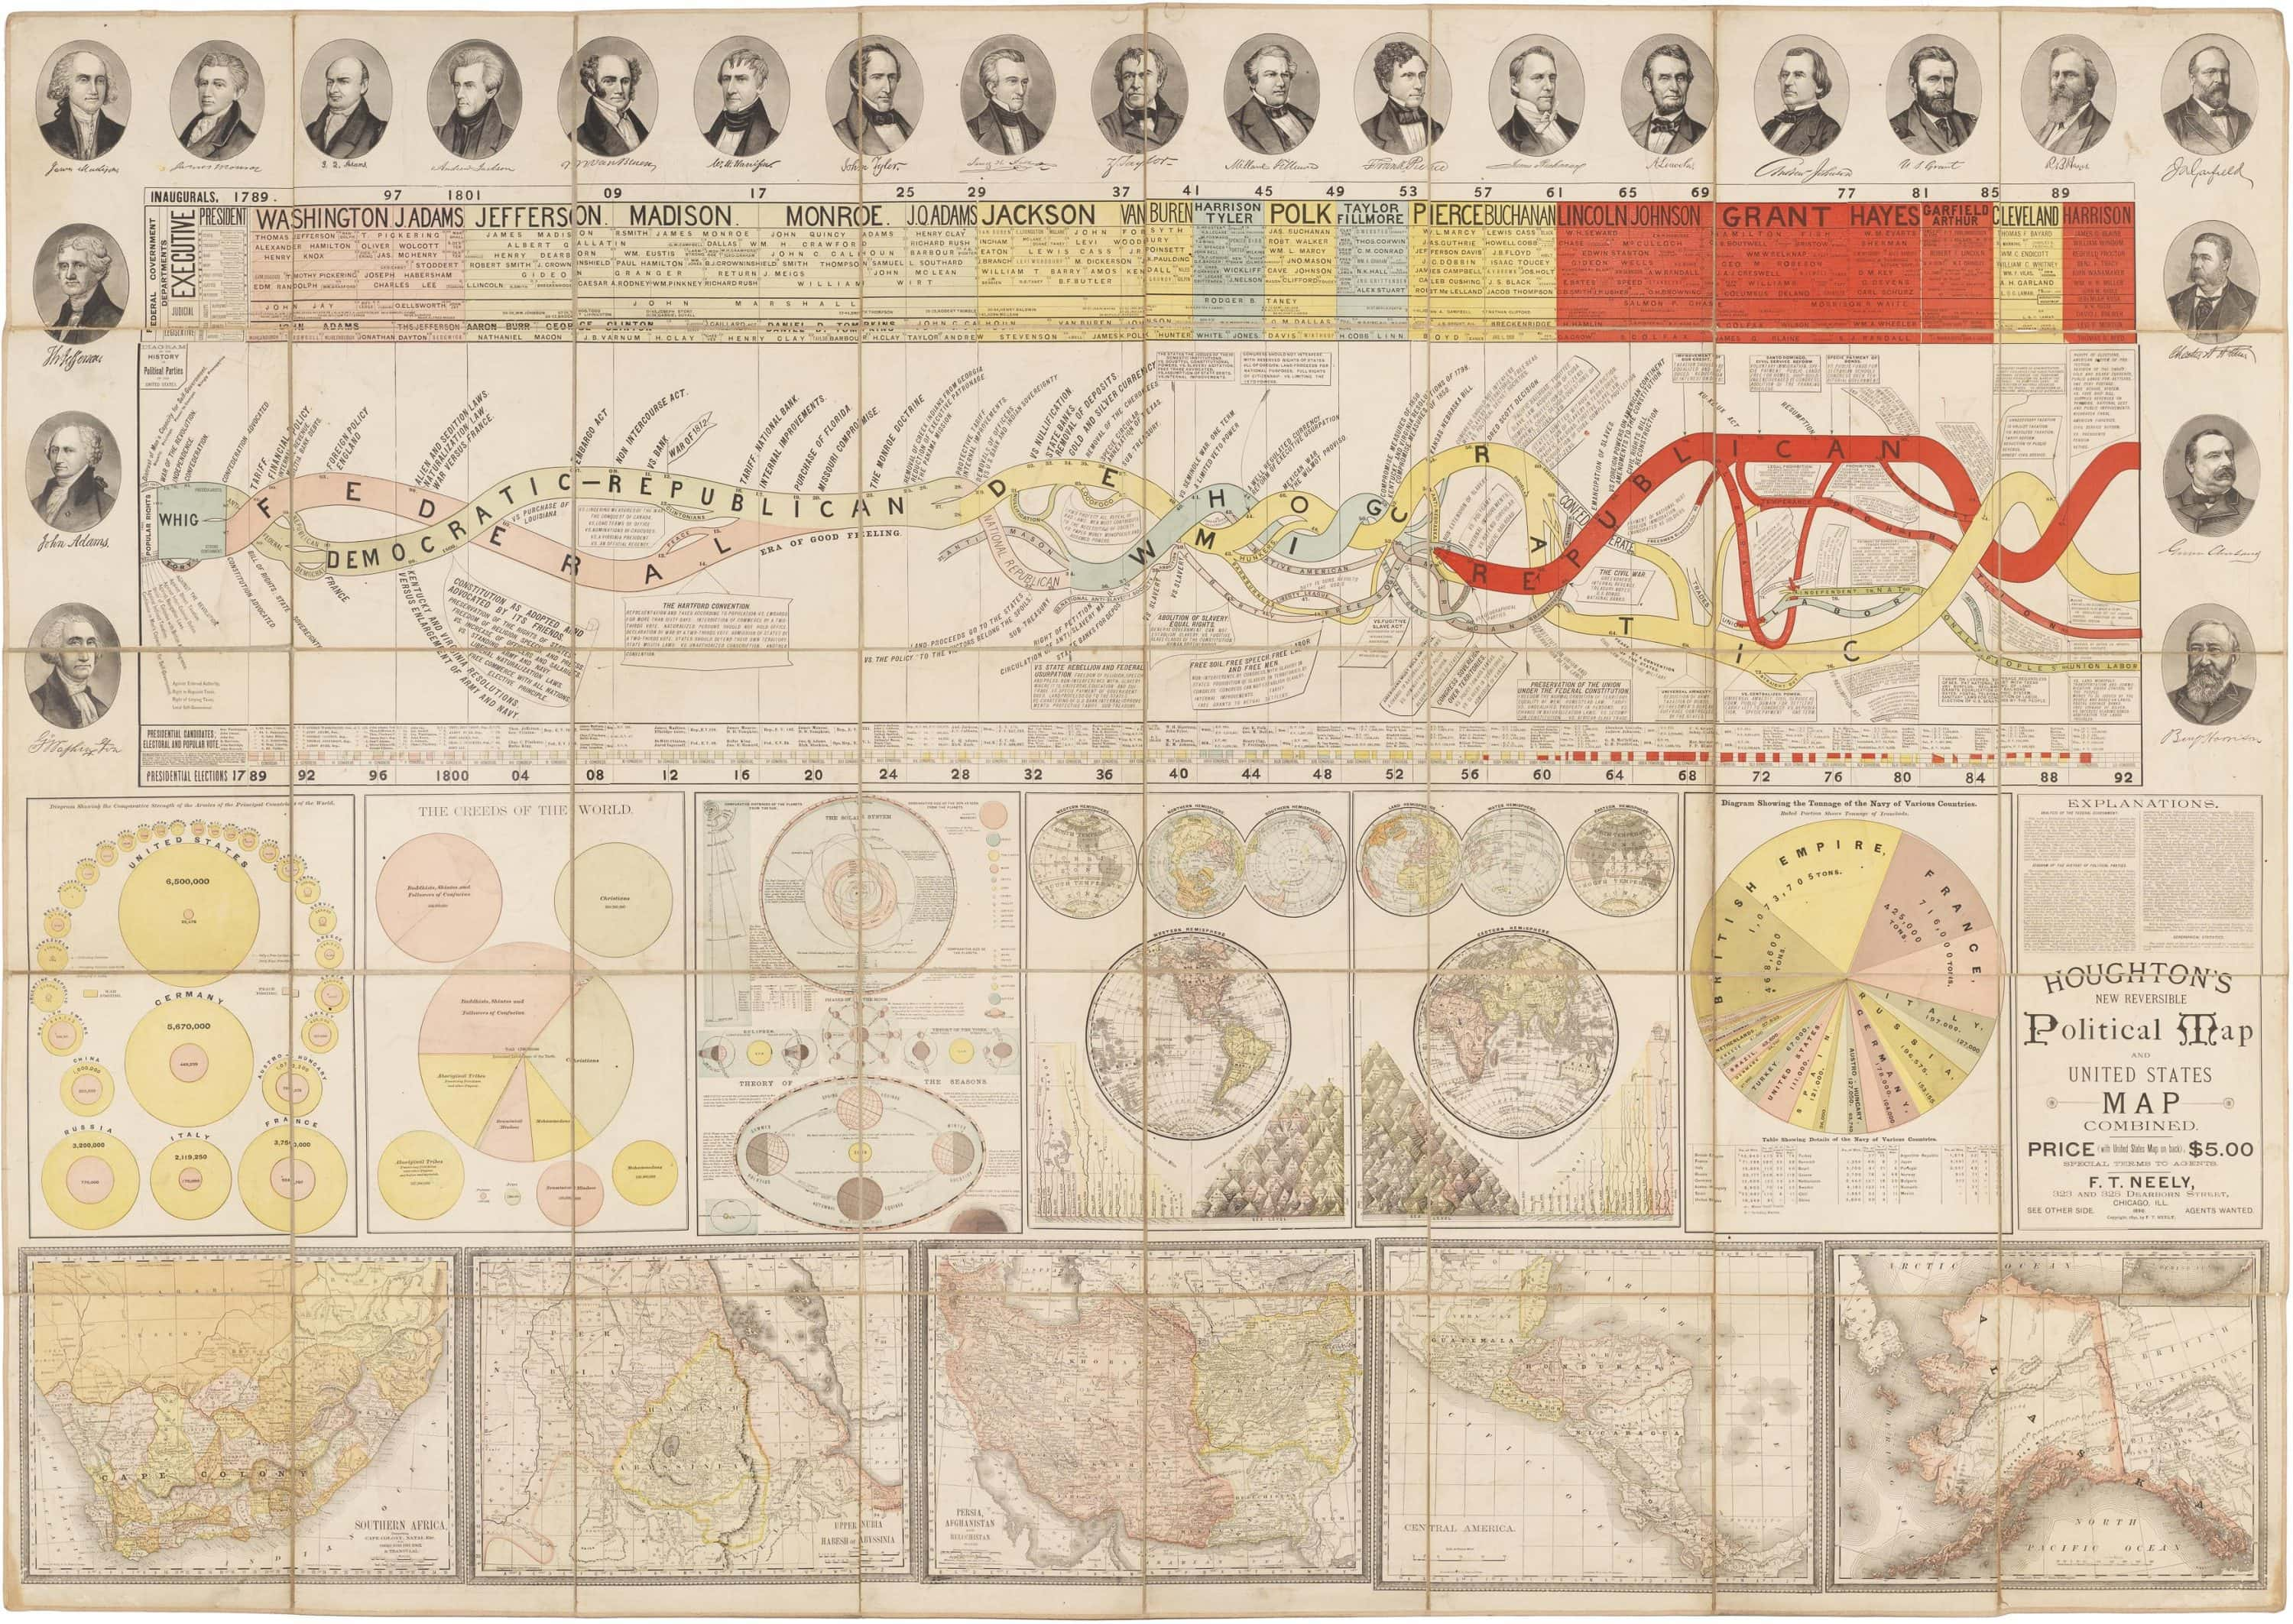 Amazing wall chart illustrating the evolution of American ... on racial map us, energy map us, geographic map us, linguistic map us, topographical map us, global map us, geography map us, language map us, geometry map us, ethnic map us, physical map us, africa map us, geologic map us, historical map us, electoral map us, national map us, religious map us, international map us, culture map us, economics map us,